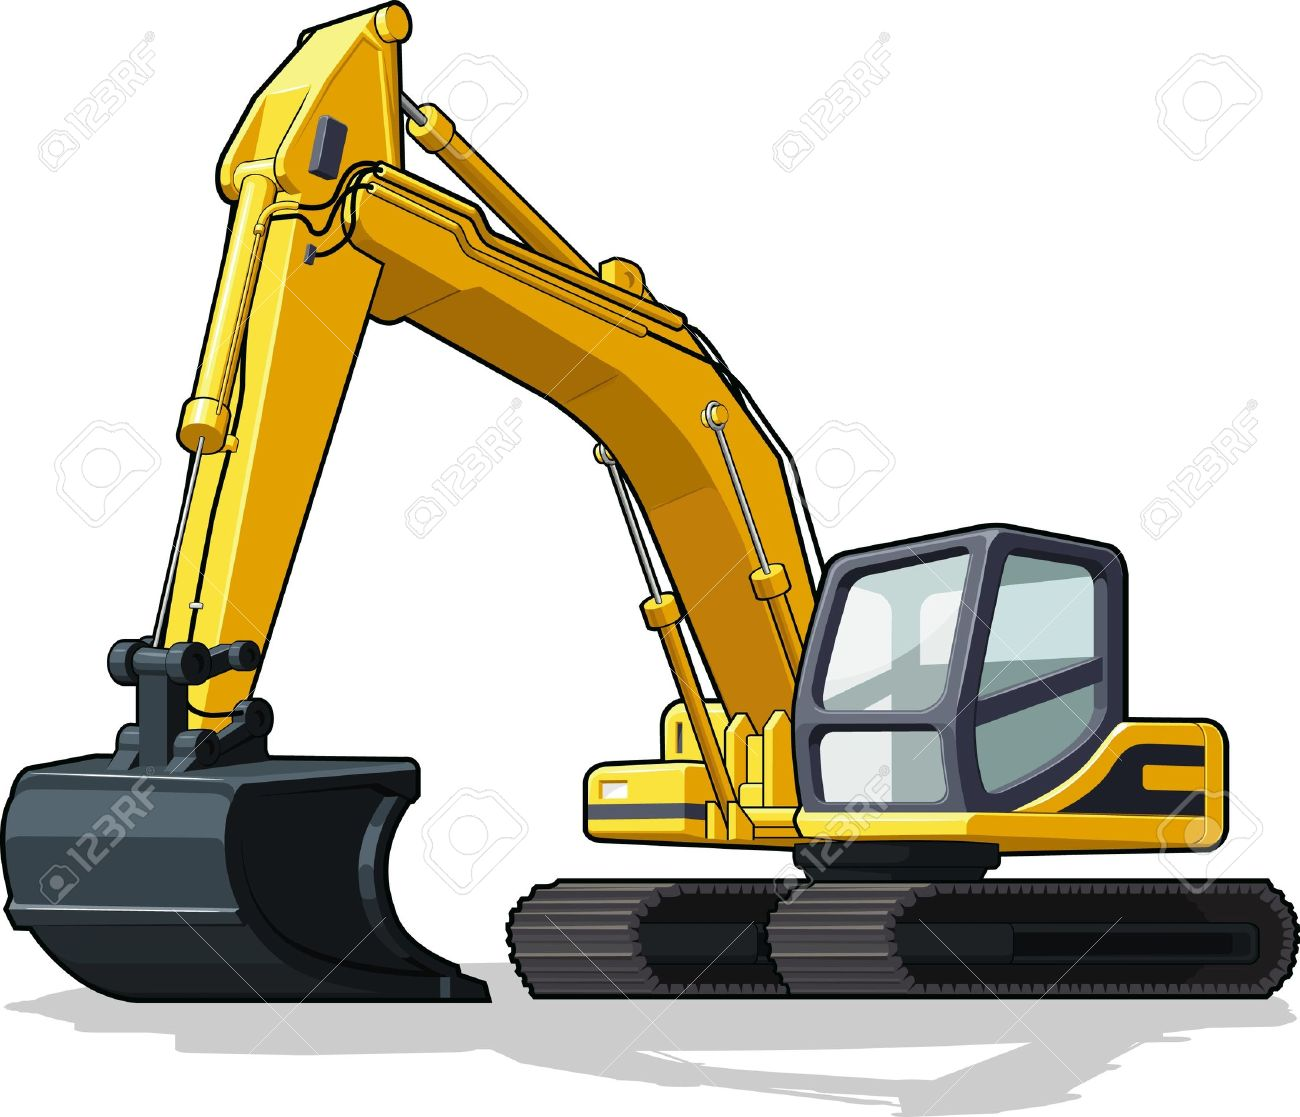 57065 Heavy Equipment Stock Illustrations Cliparts And Royalty